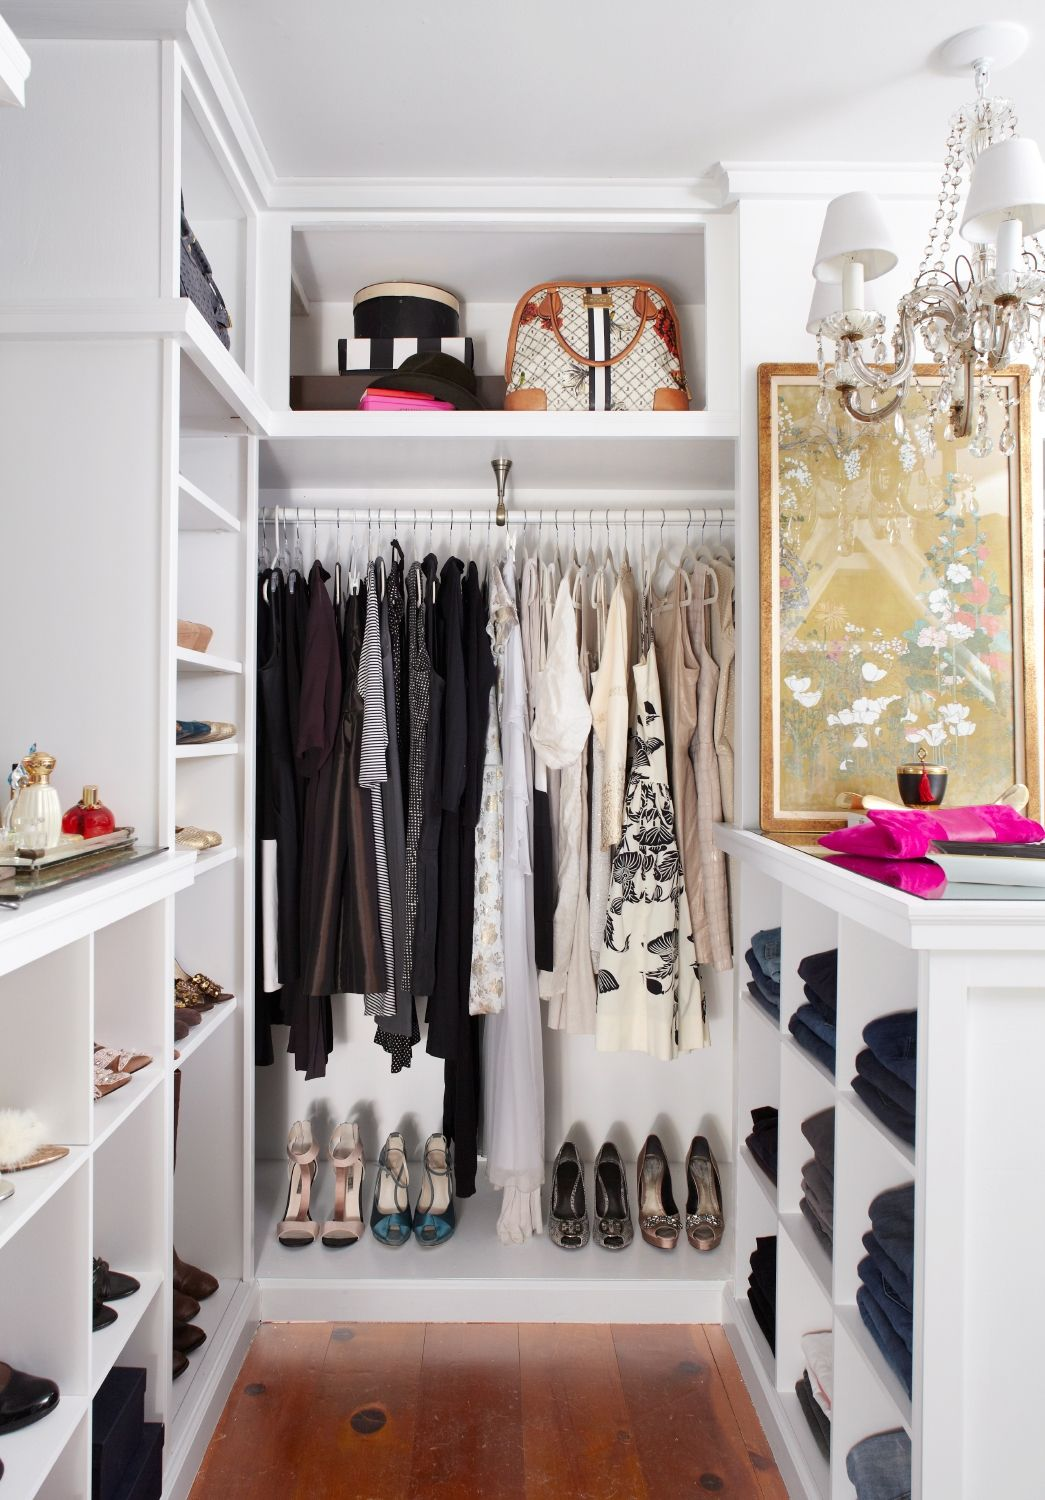 Creative Walk In Closet Systems In 2020 With Images Small Dressing Rooms Bedroom Organization Closet Organizing Walk In Closet